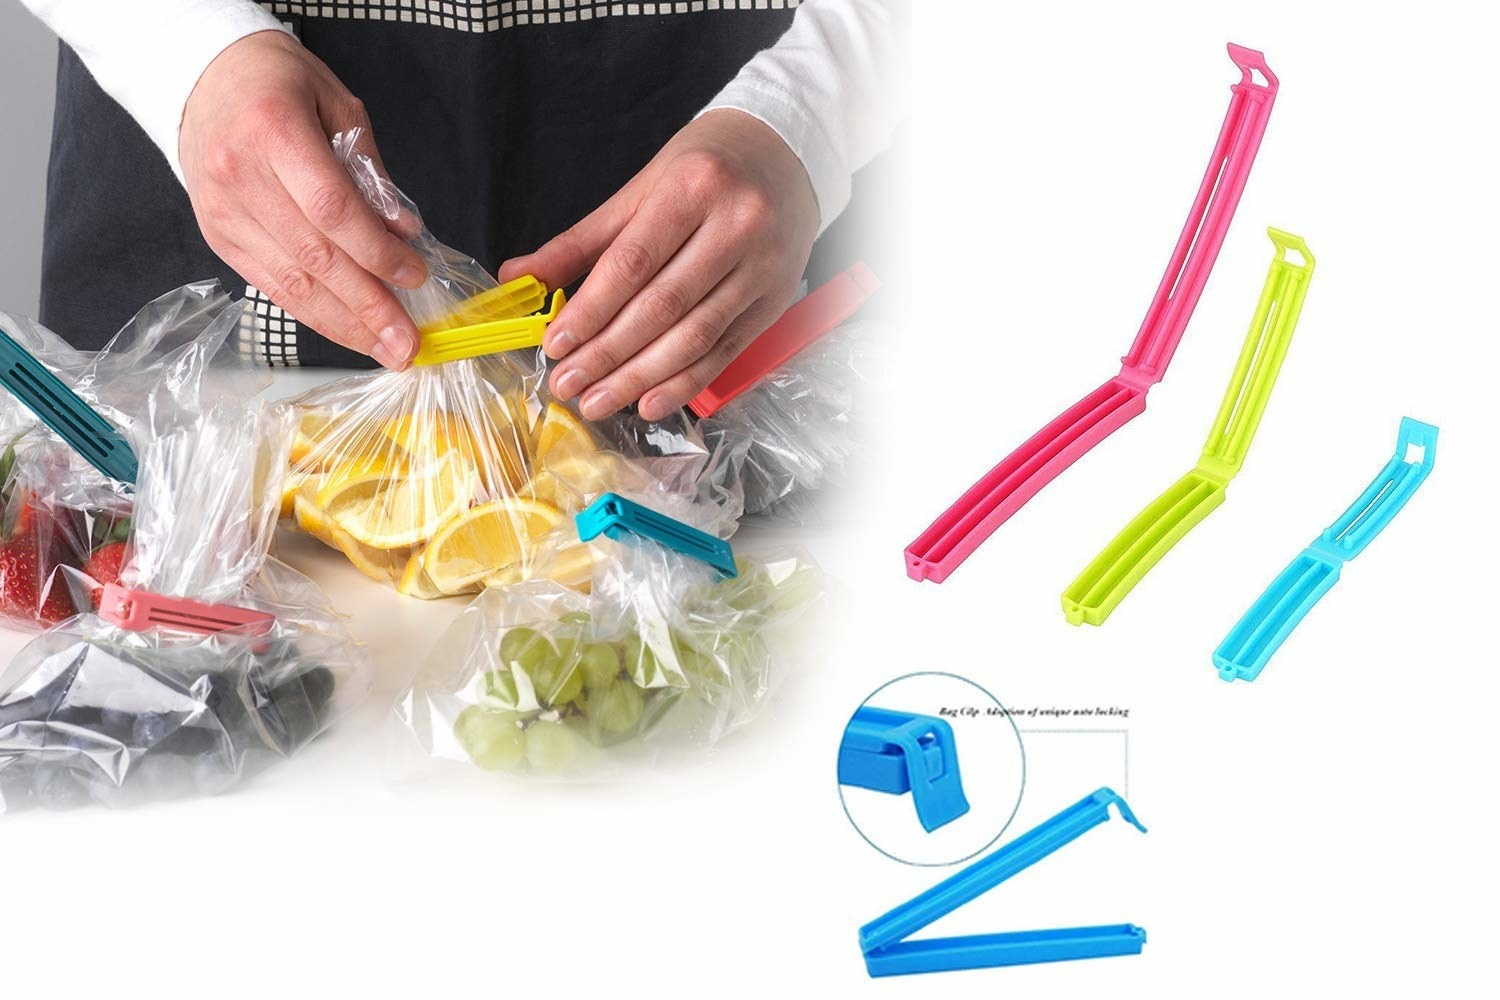 A person sealing different cut fruits in a plastic bag with different coloured clips